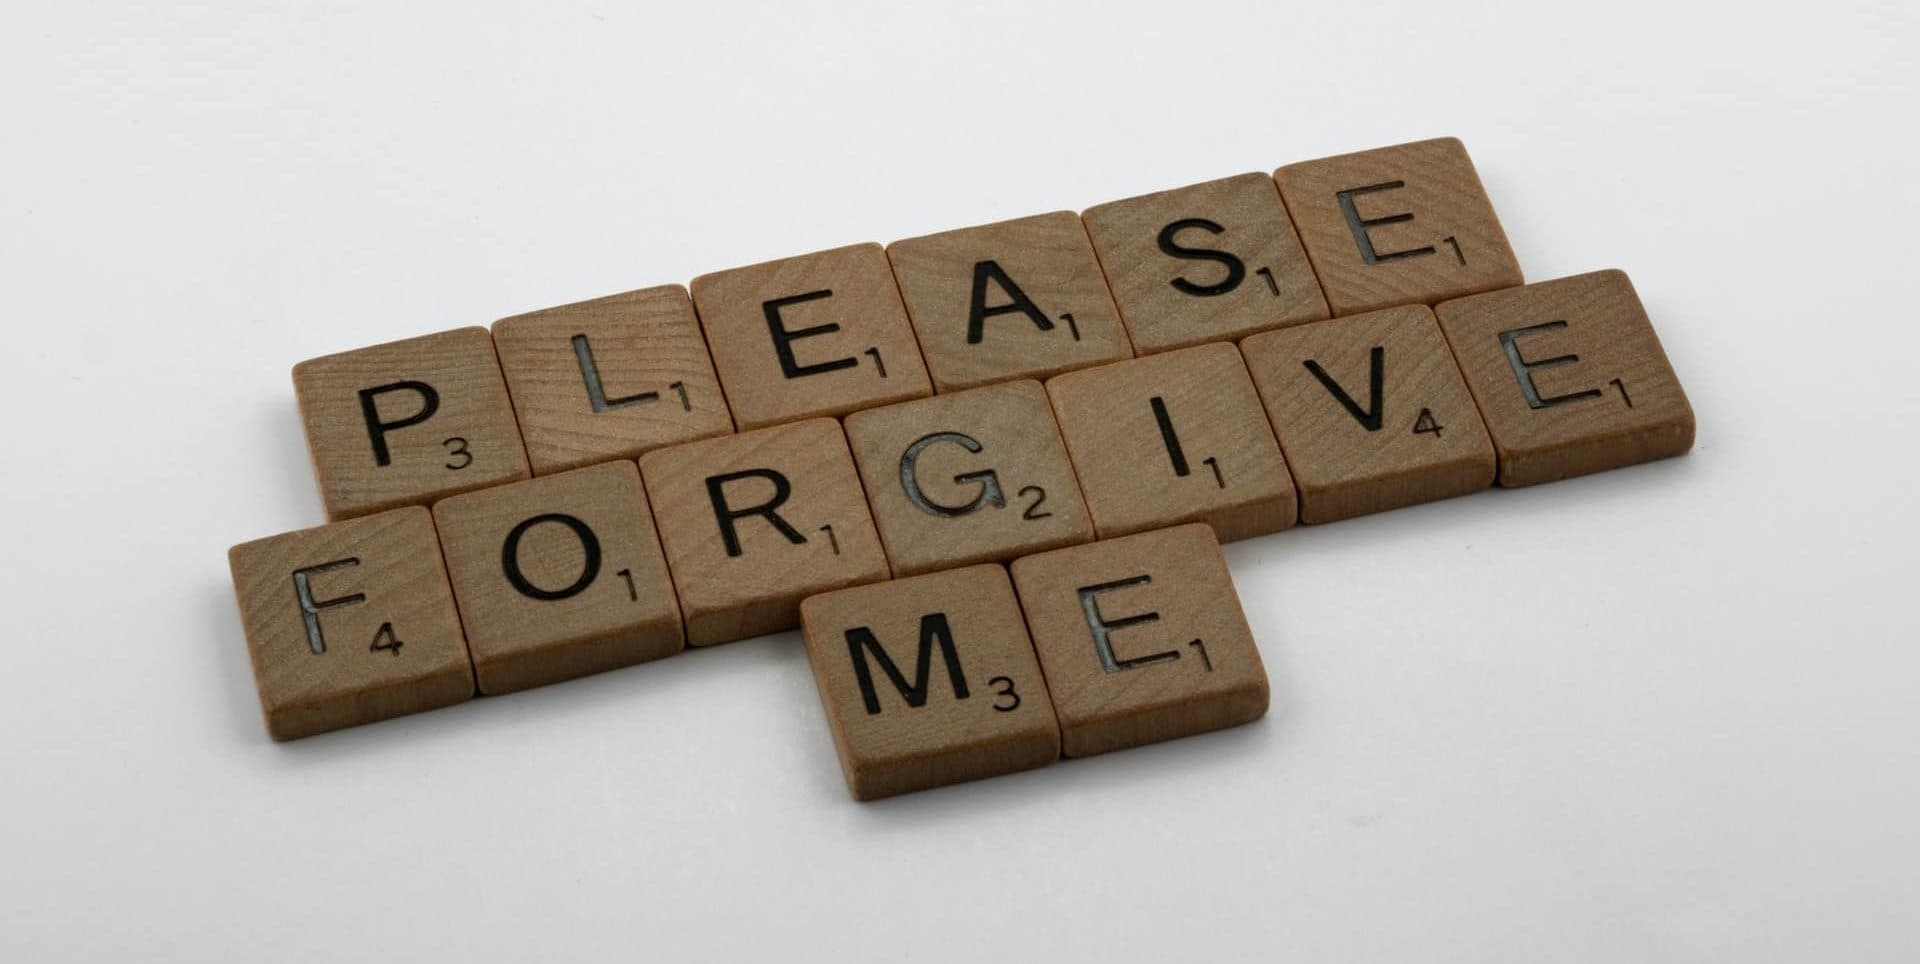 In this episode, Pastor Adam shares 6 steps to truly forgive.